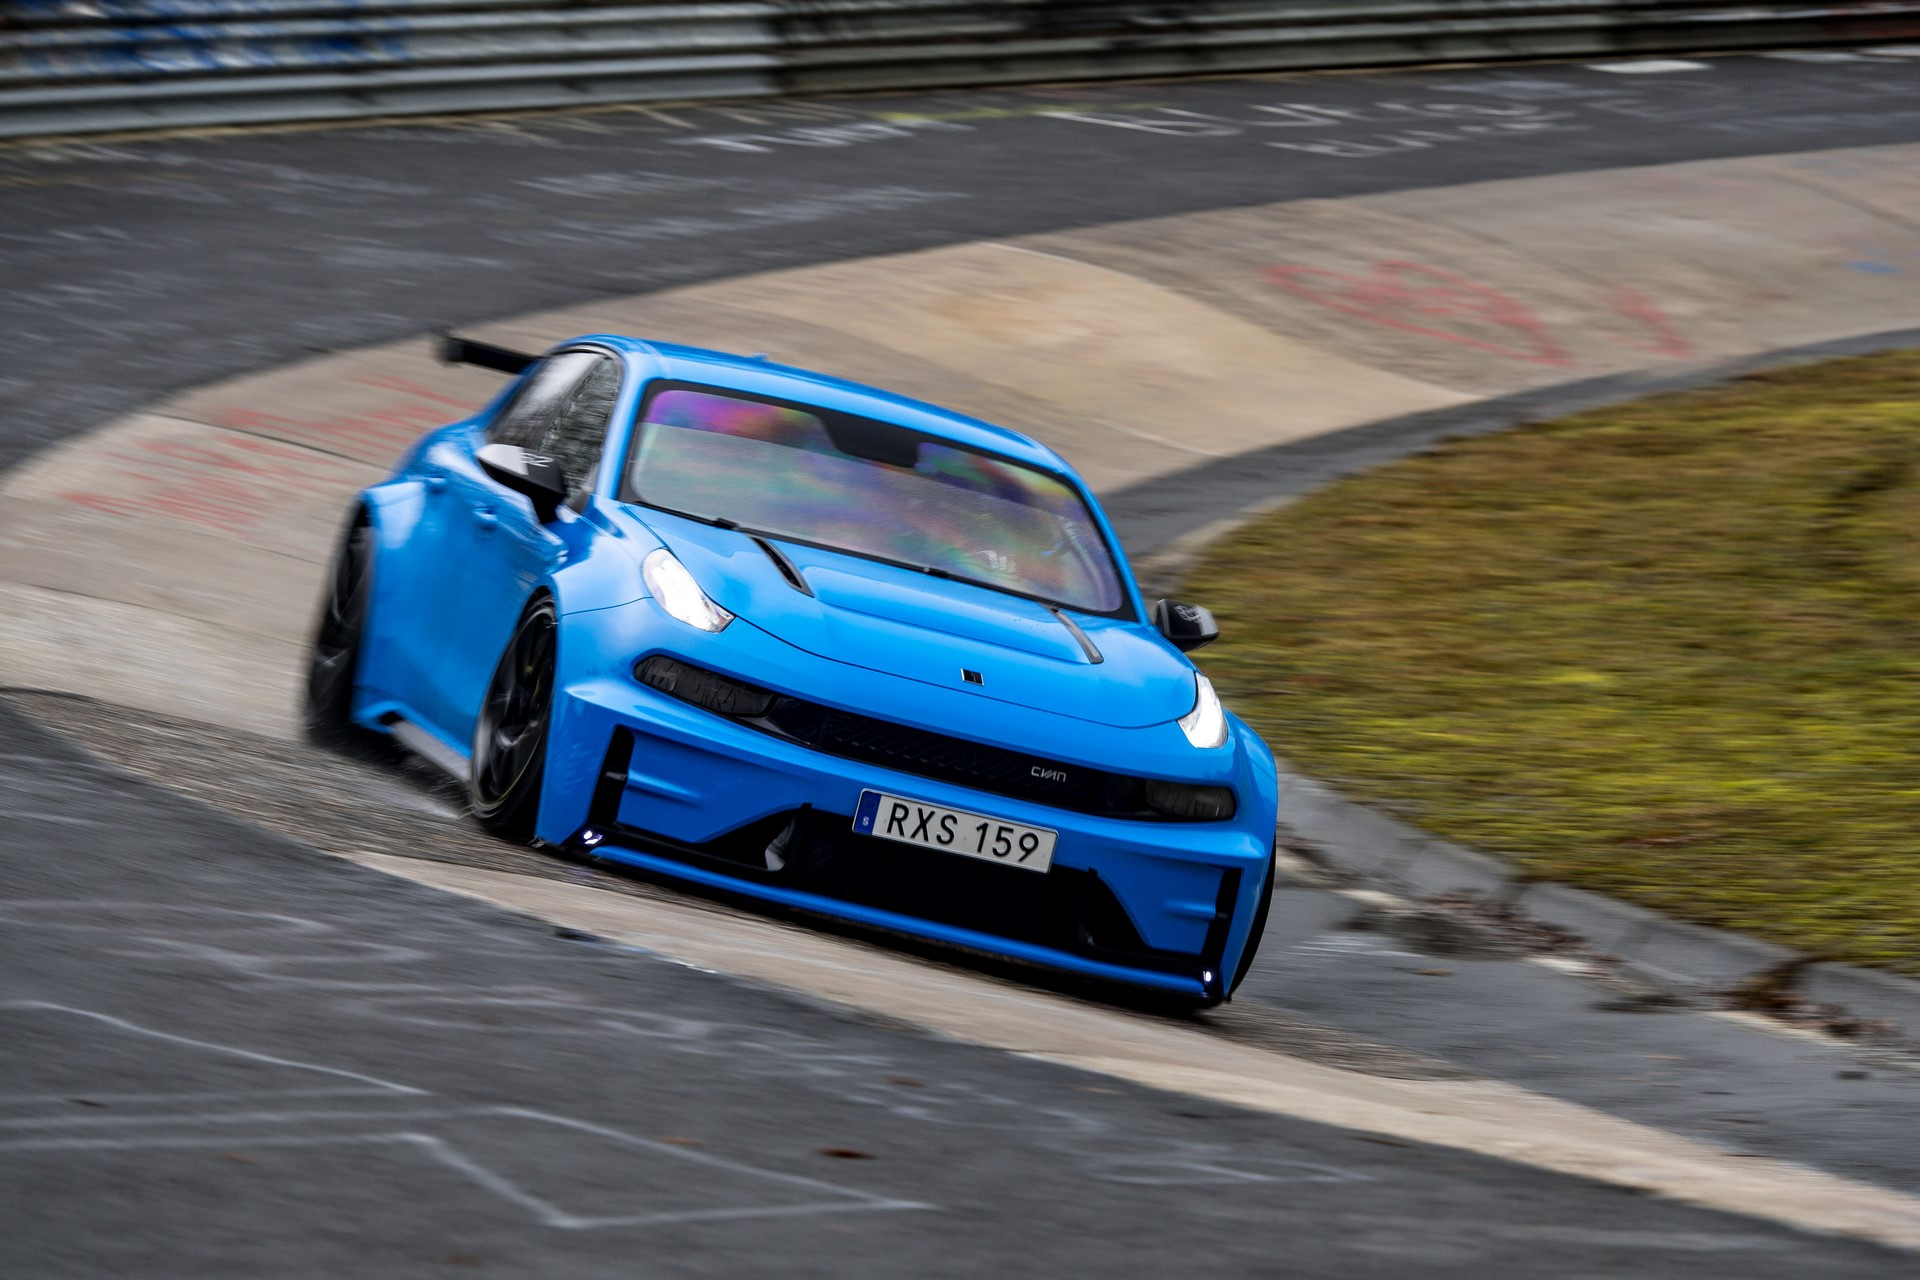 Lynk-Co-03-Cyan-Concept-Nurburgring-record-10